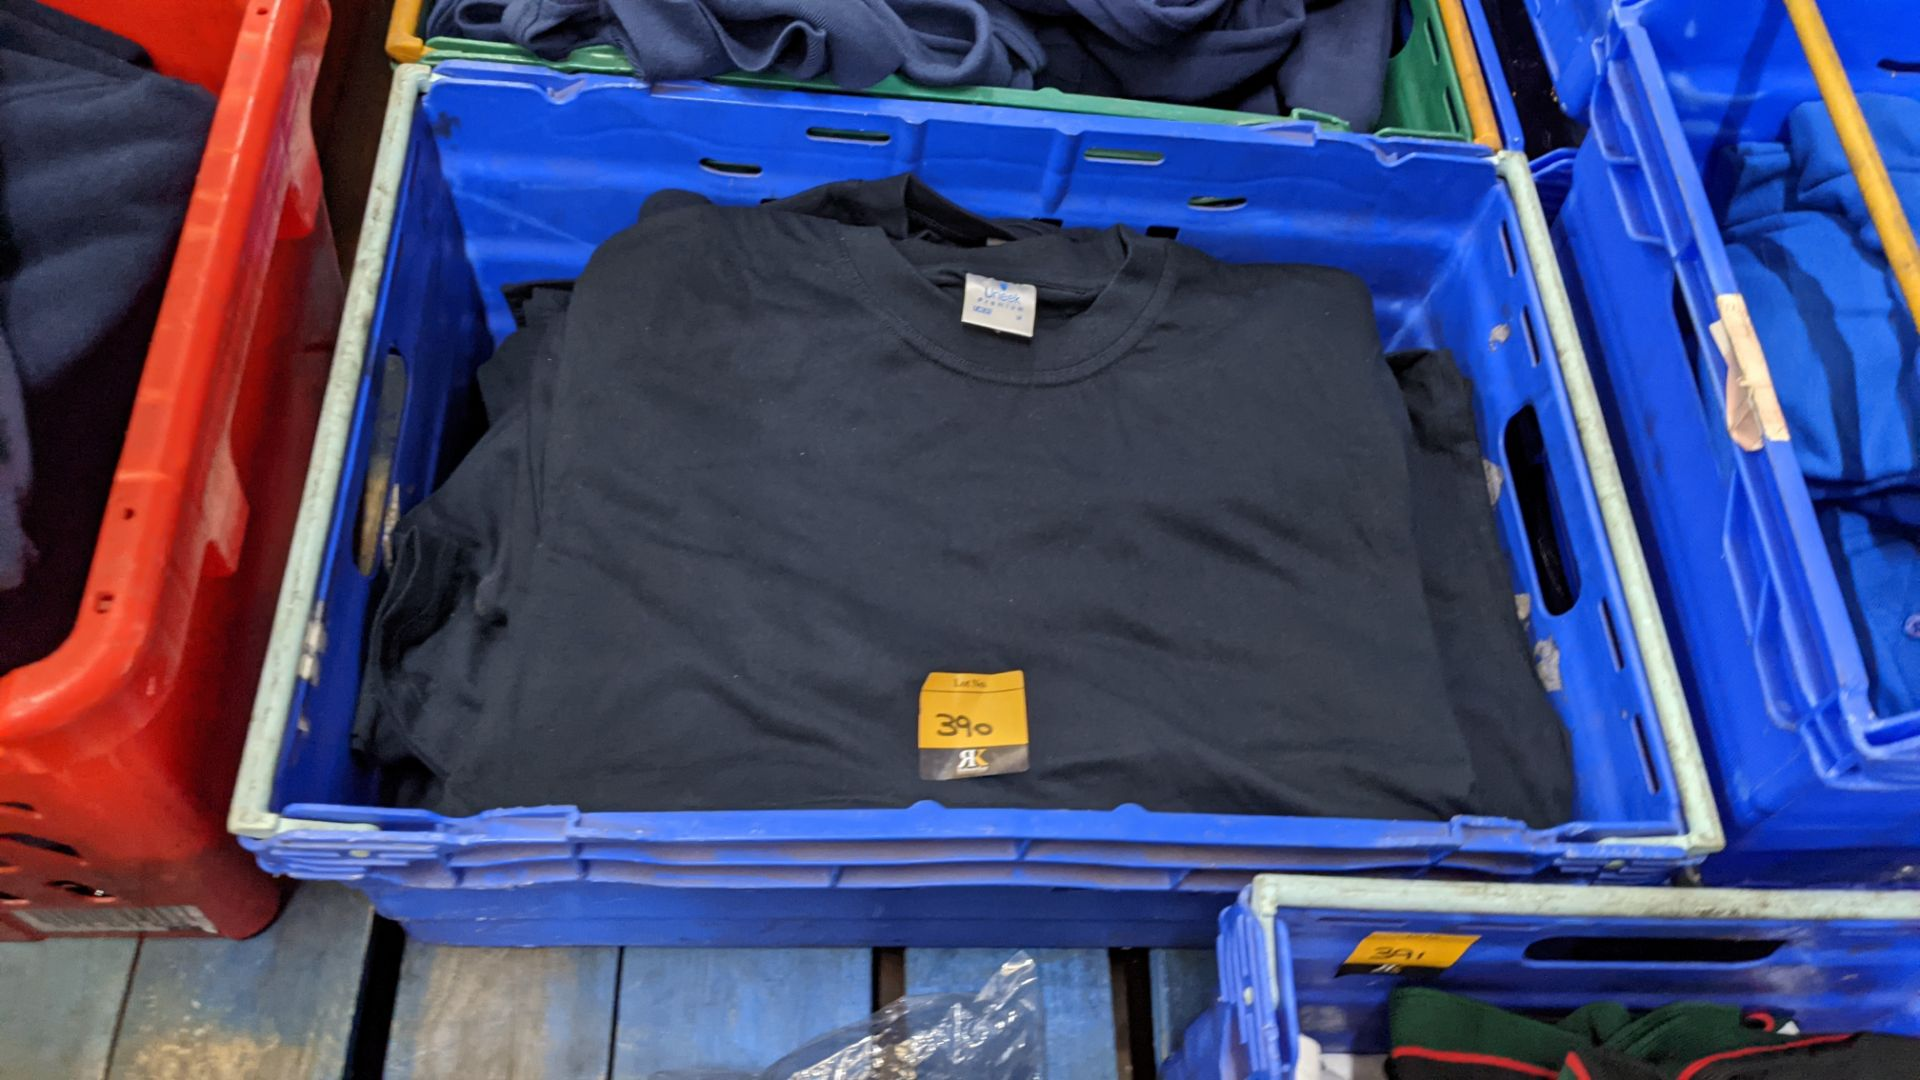 Approx 30 off black t-shirts by Uneek